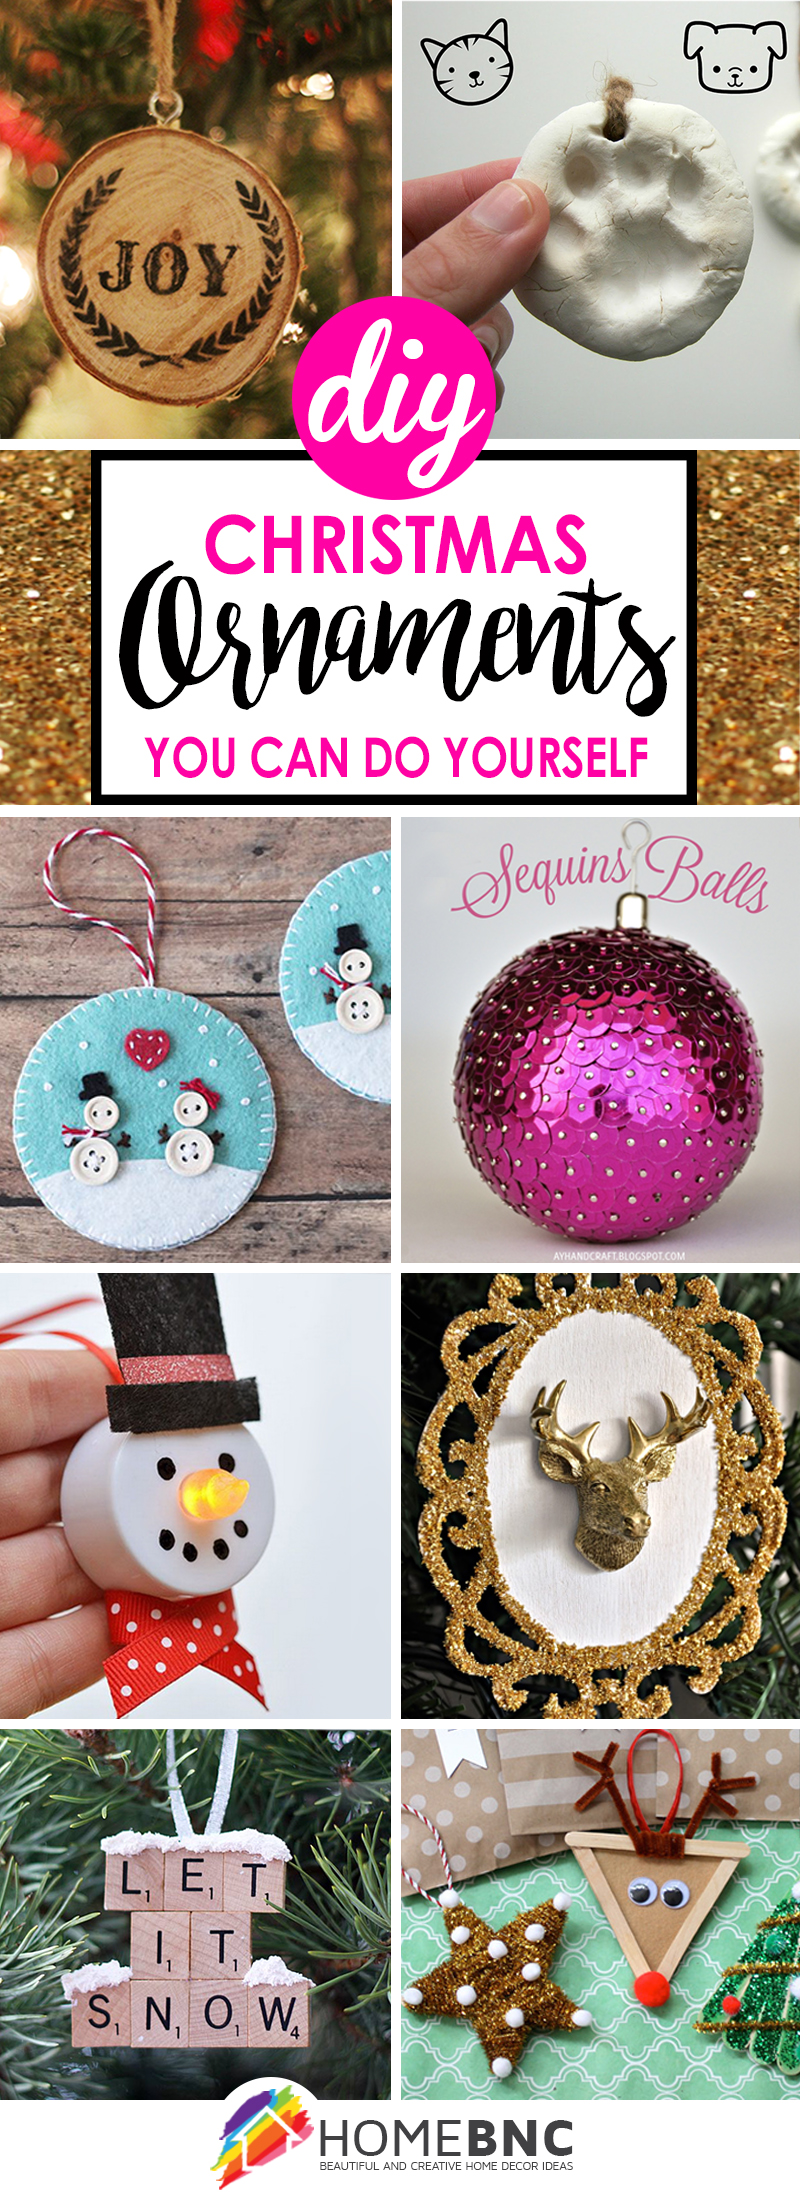 50 incredible diy christmas ornament tutorials for 2018 diy christmas ornament ideas solutioingenieria Image collections